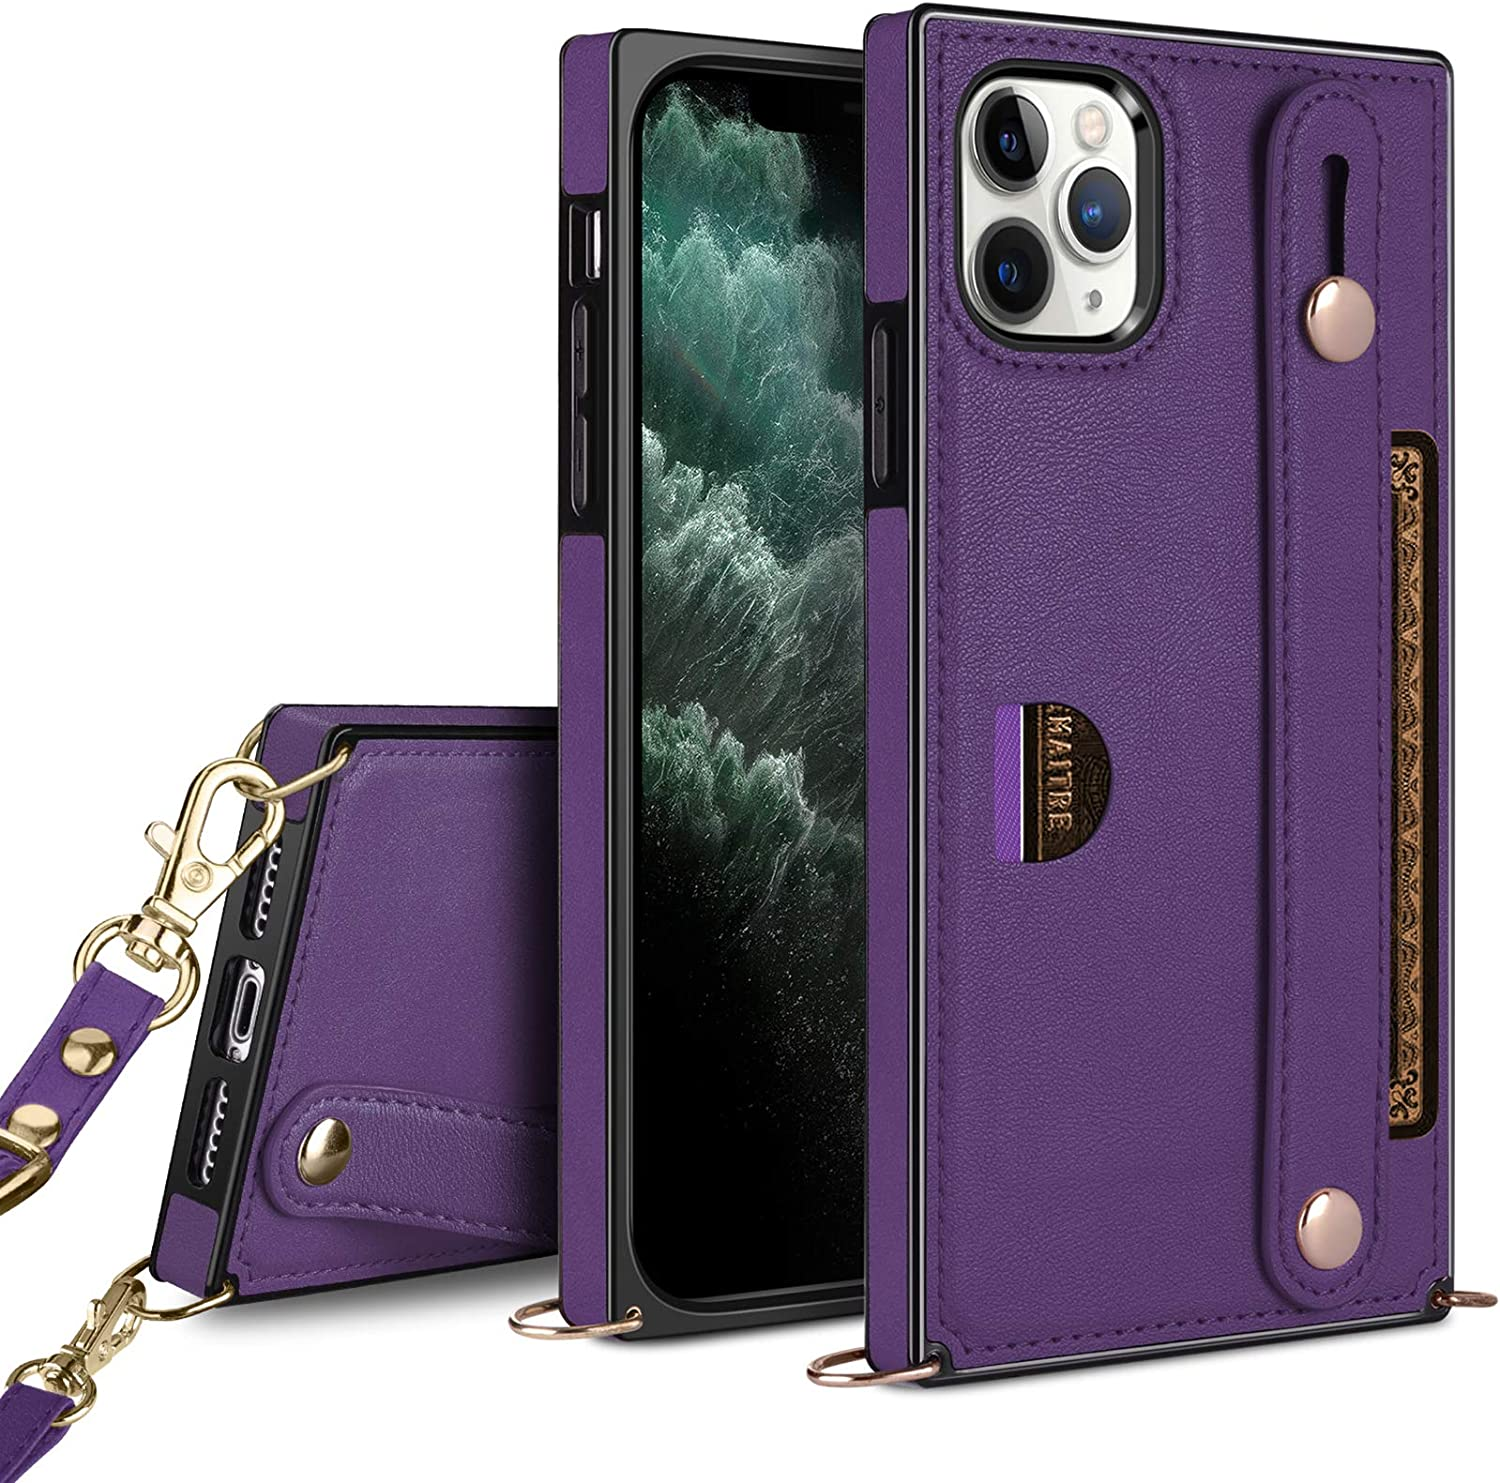 HianDier Compatible with iPhone 11 Po Max 6.5-Inch Wallet Case Slim Protective Case with Hand Strap Holder Kickstand Lanyard Credit Card Slot Soft PU Leather Square Cover, Purple